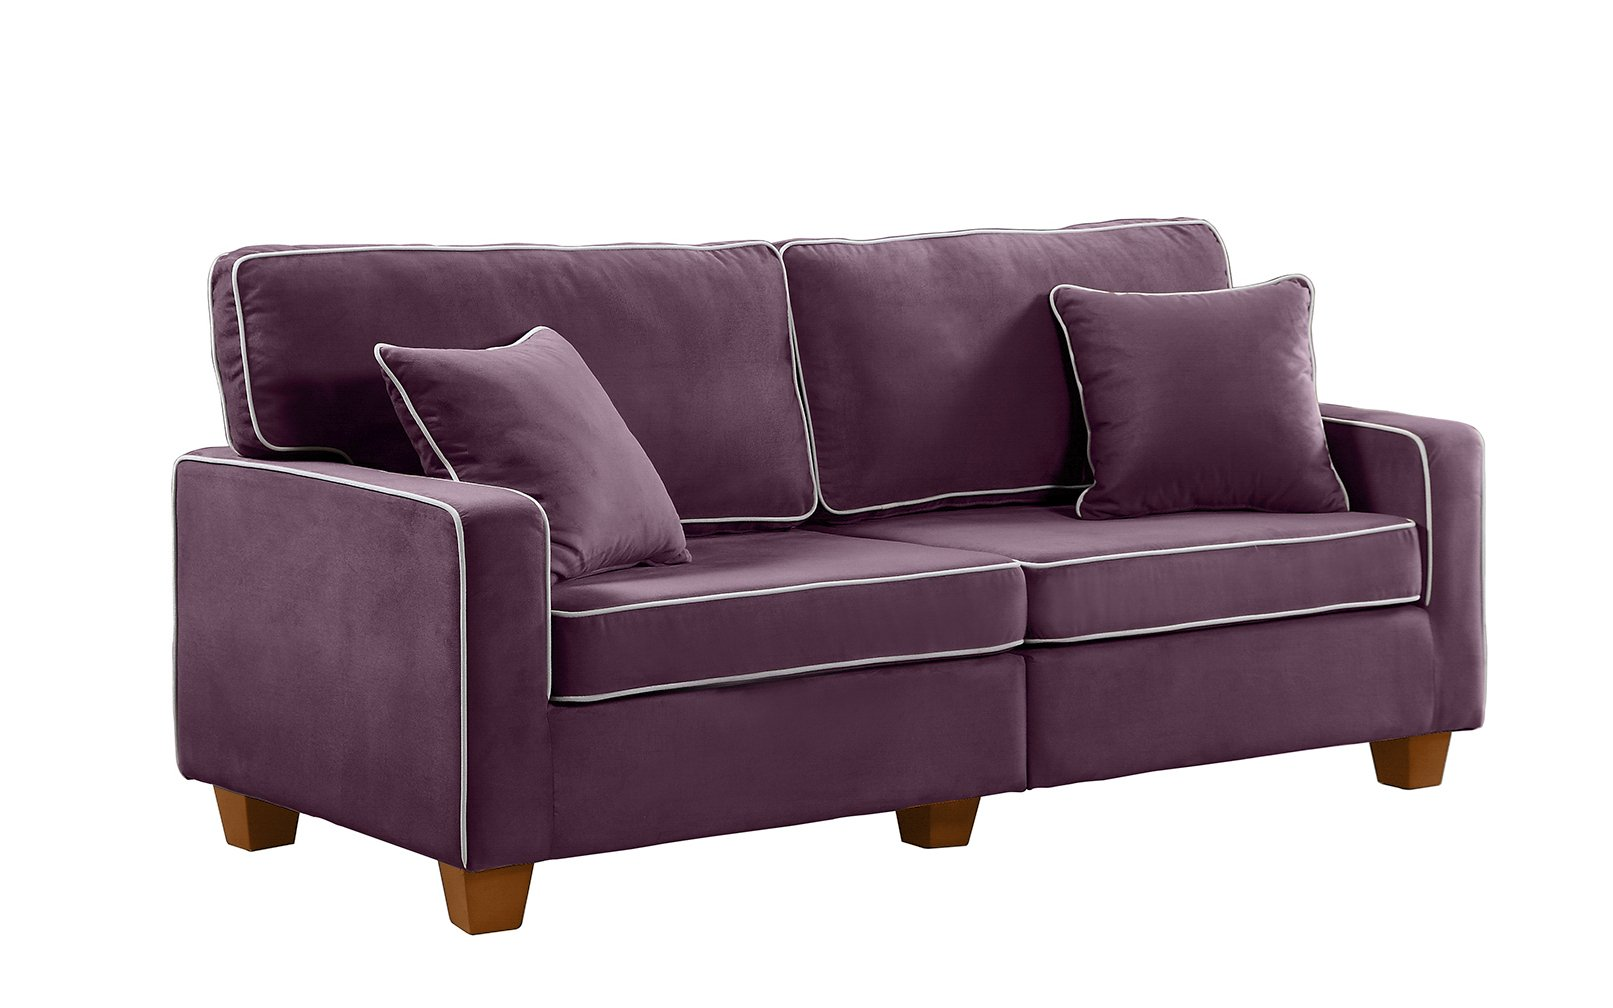 Terrific Details About Modern Two Tone Couch Velvet Fabric Living Room Love Seat Sofa Pillows Purple Caraccident5 Cool Chair Designs And Ideas Caraccident5Info